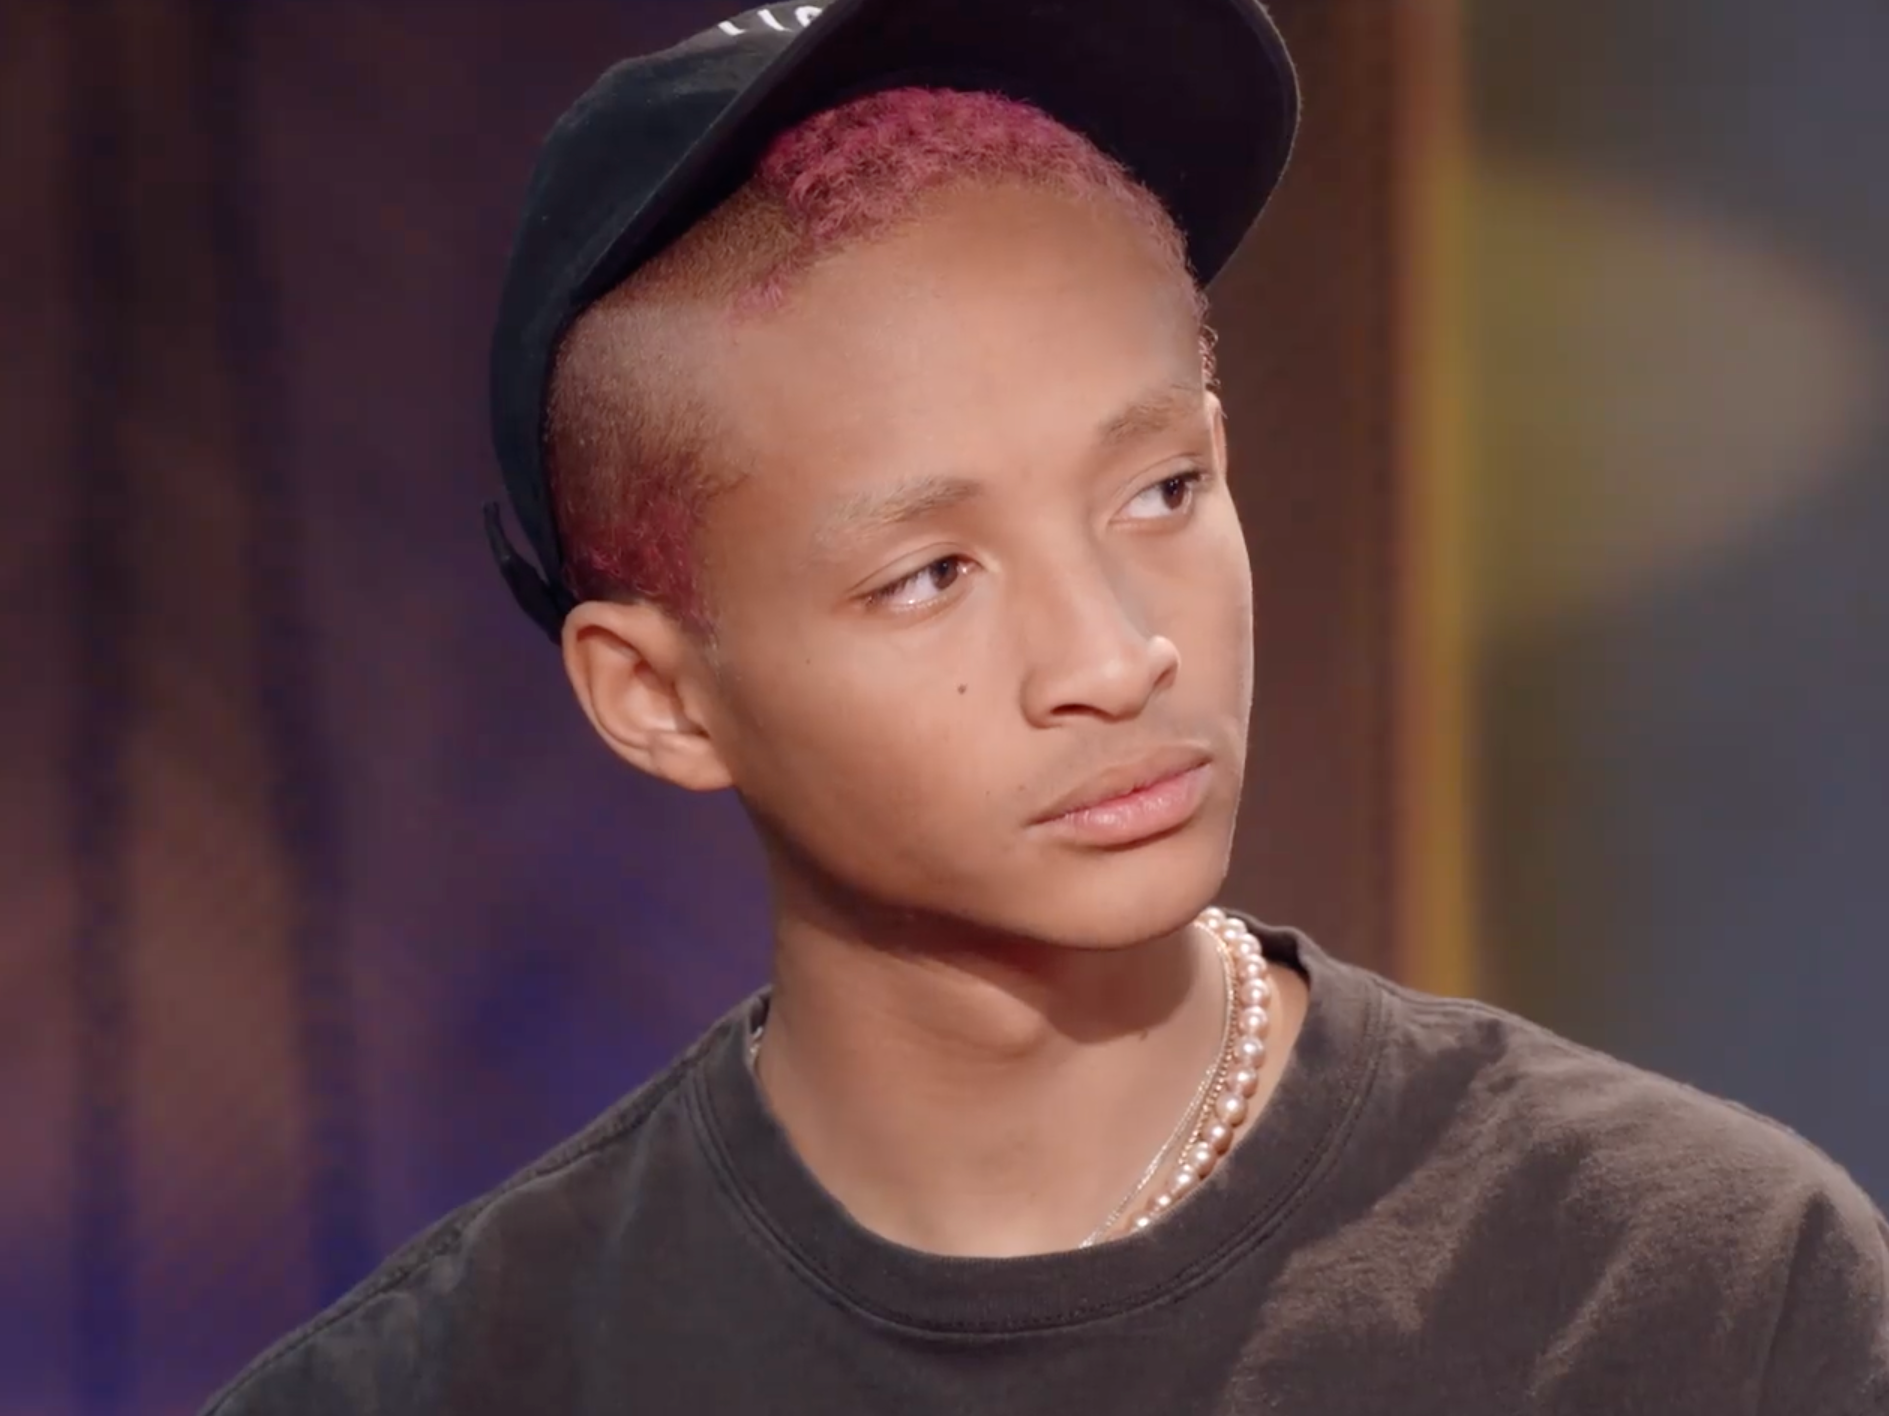 Jaden Smith says people offered him food and questioned his health ...